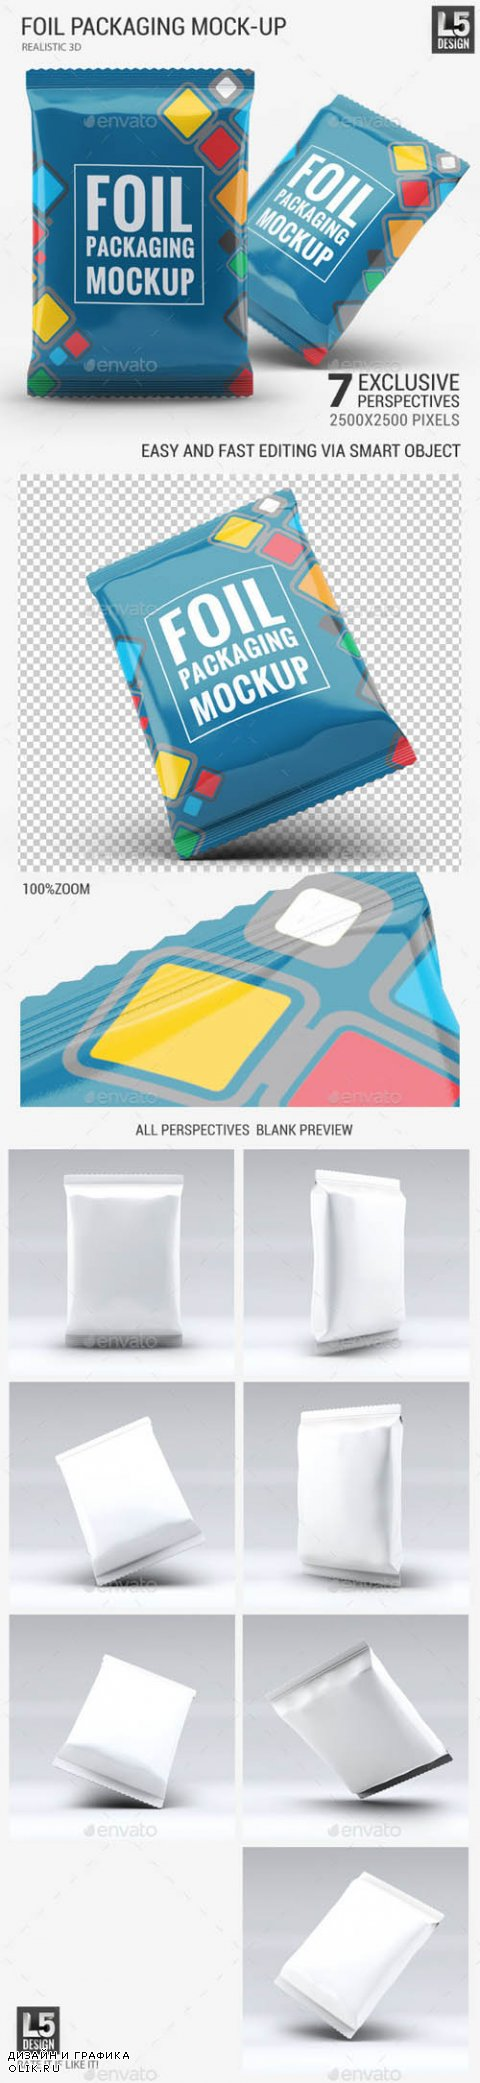 Foil Packaging Mock-Up 11625656